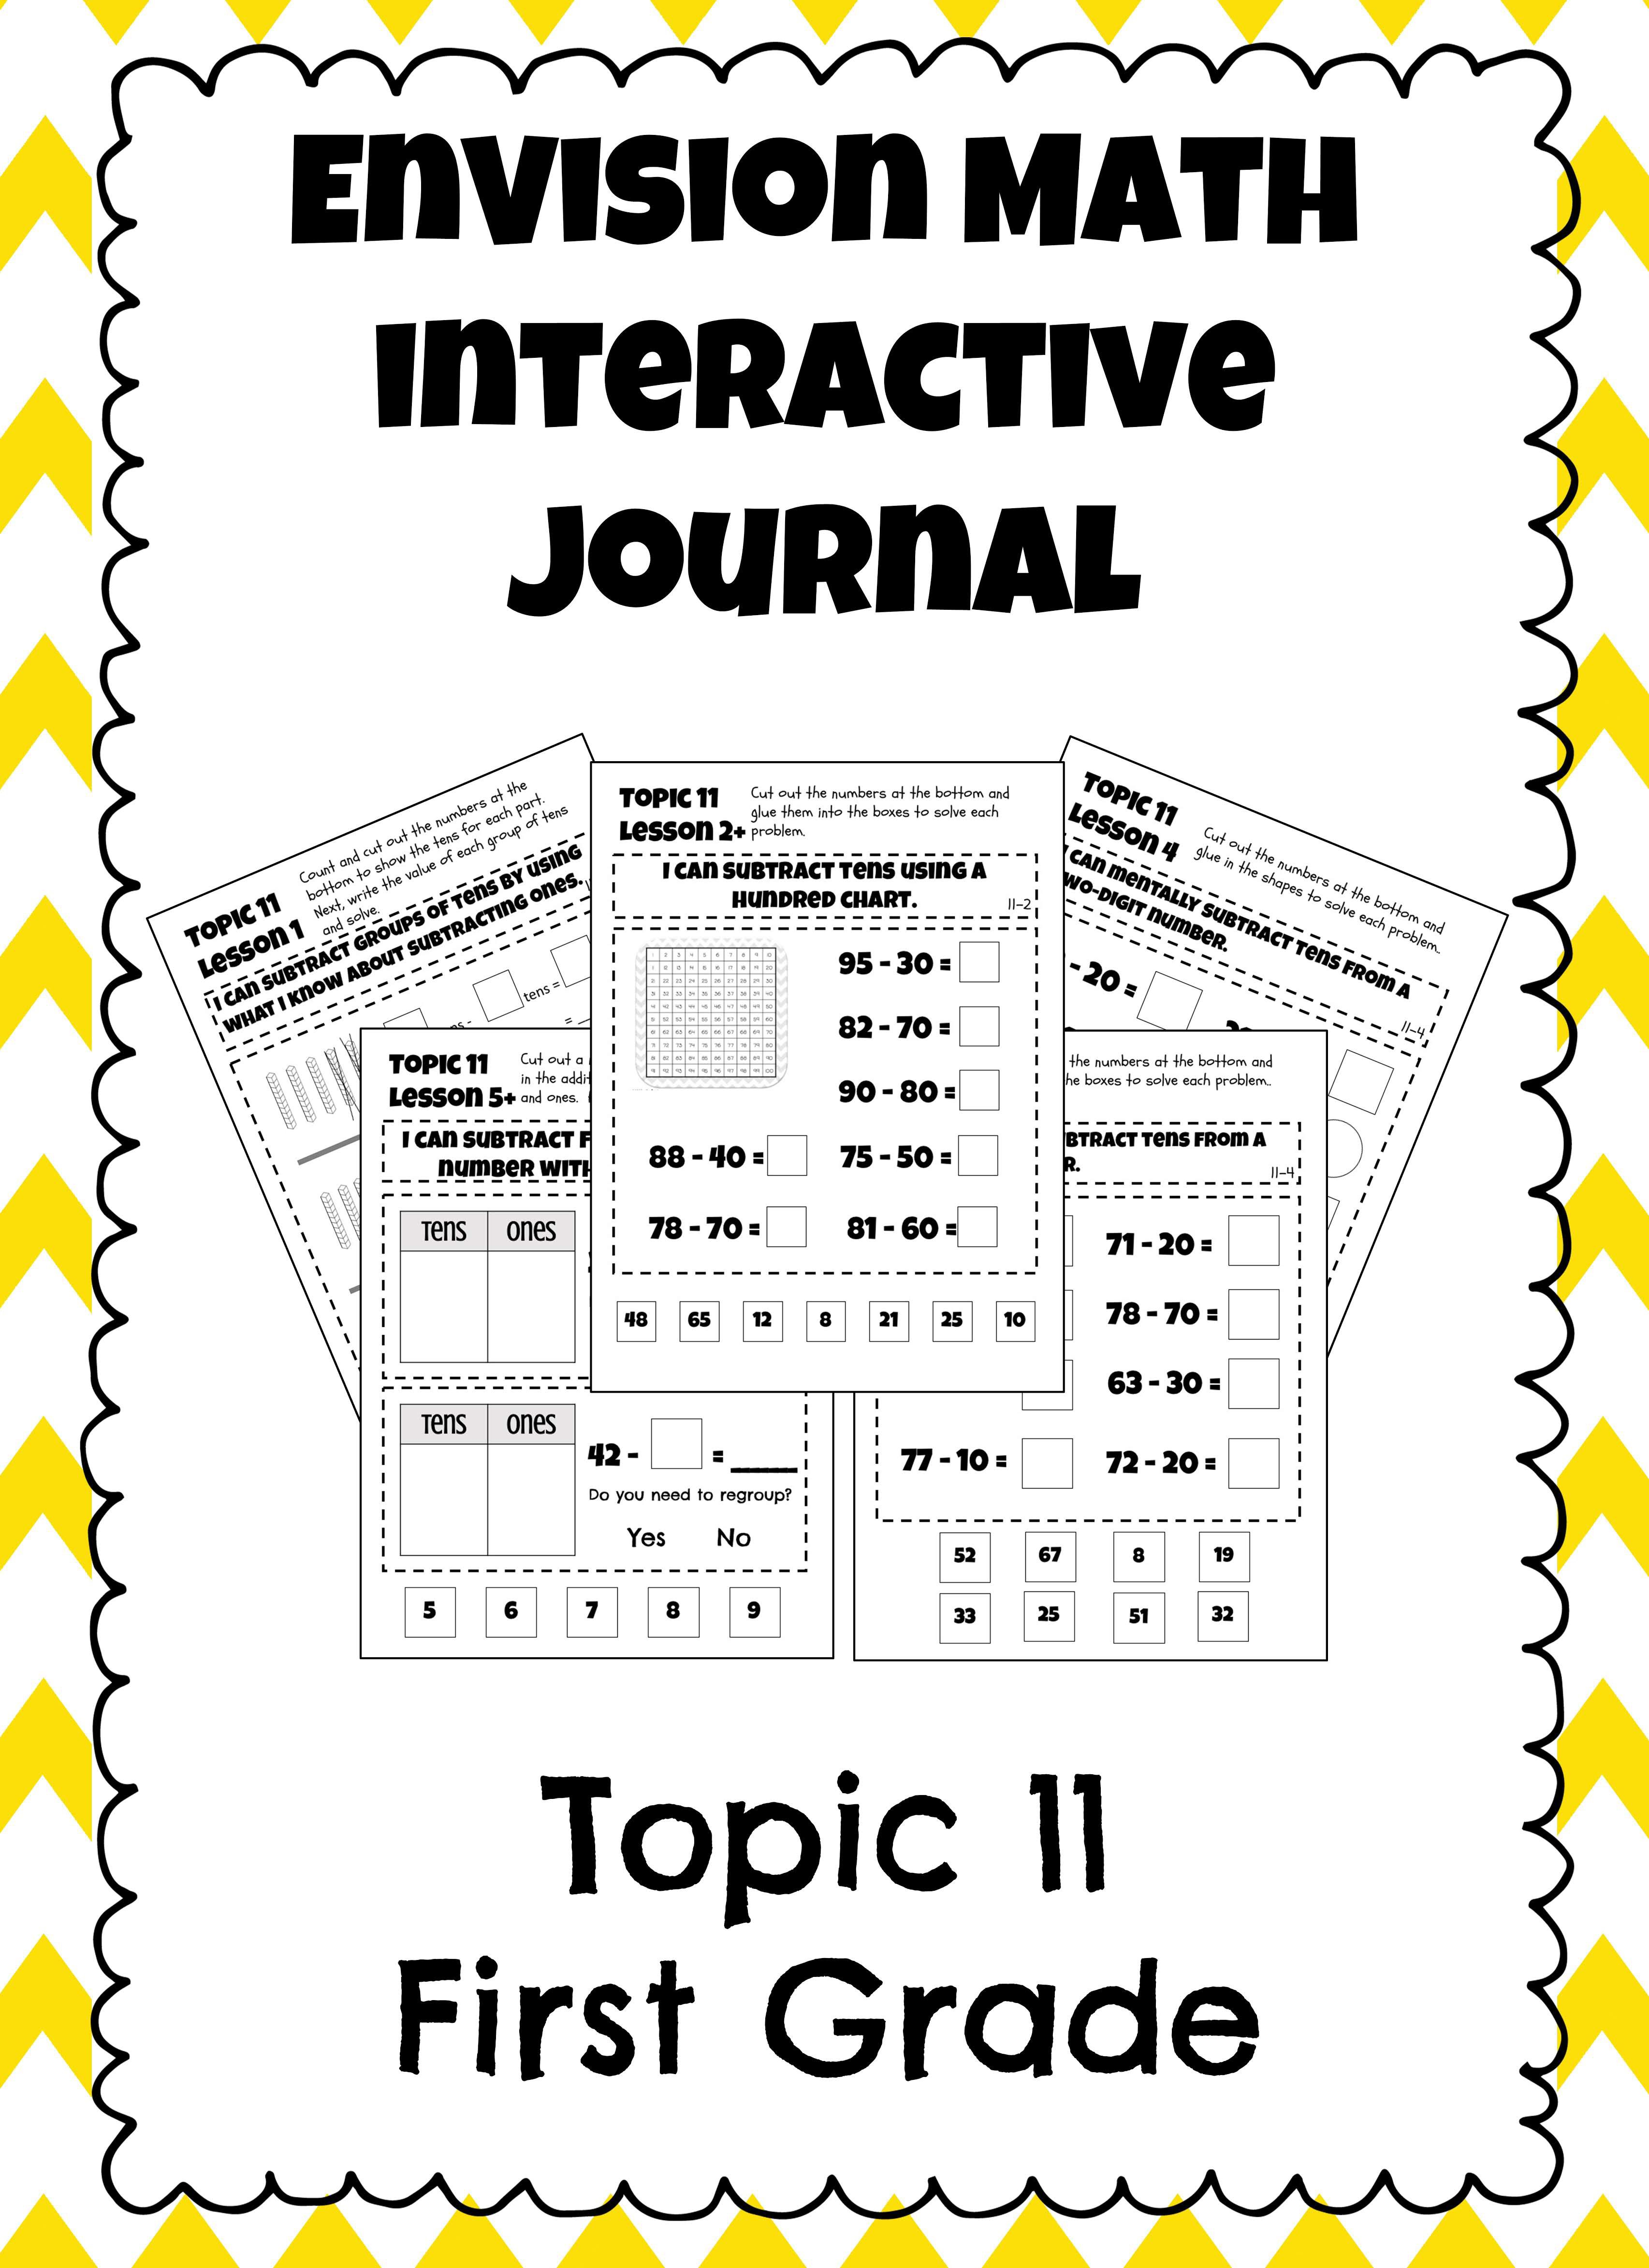 First Grade Envision Math Topic 11 Interactive Notebook Interactive Math Journals Envision Math Interactive Journals